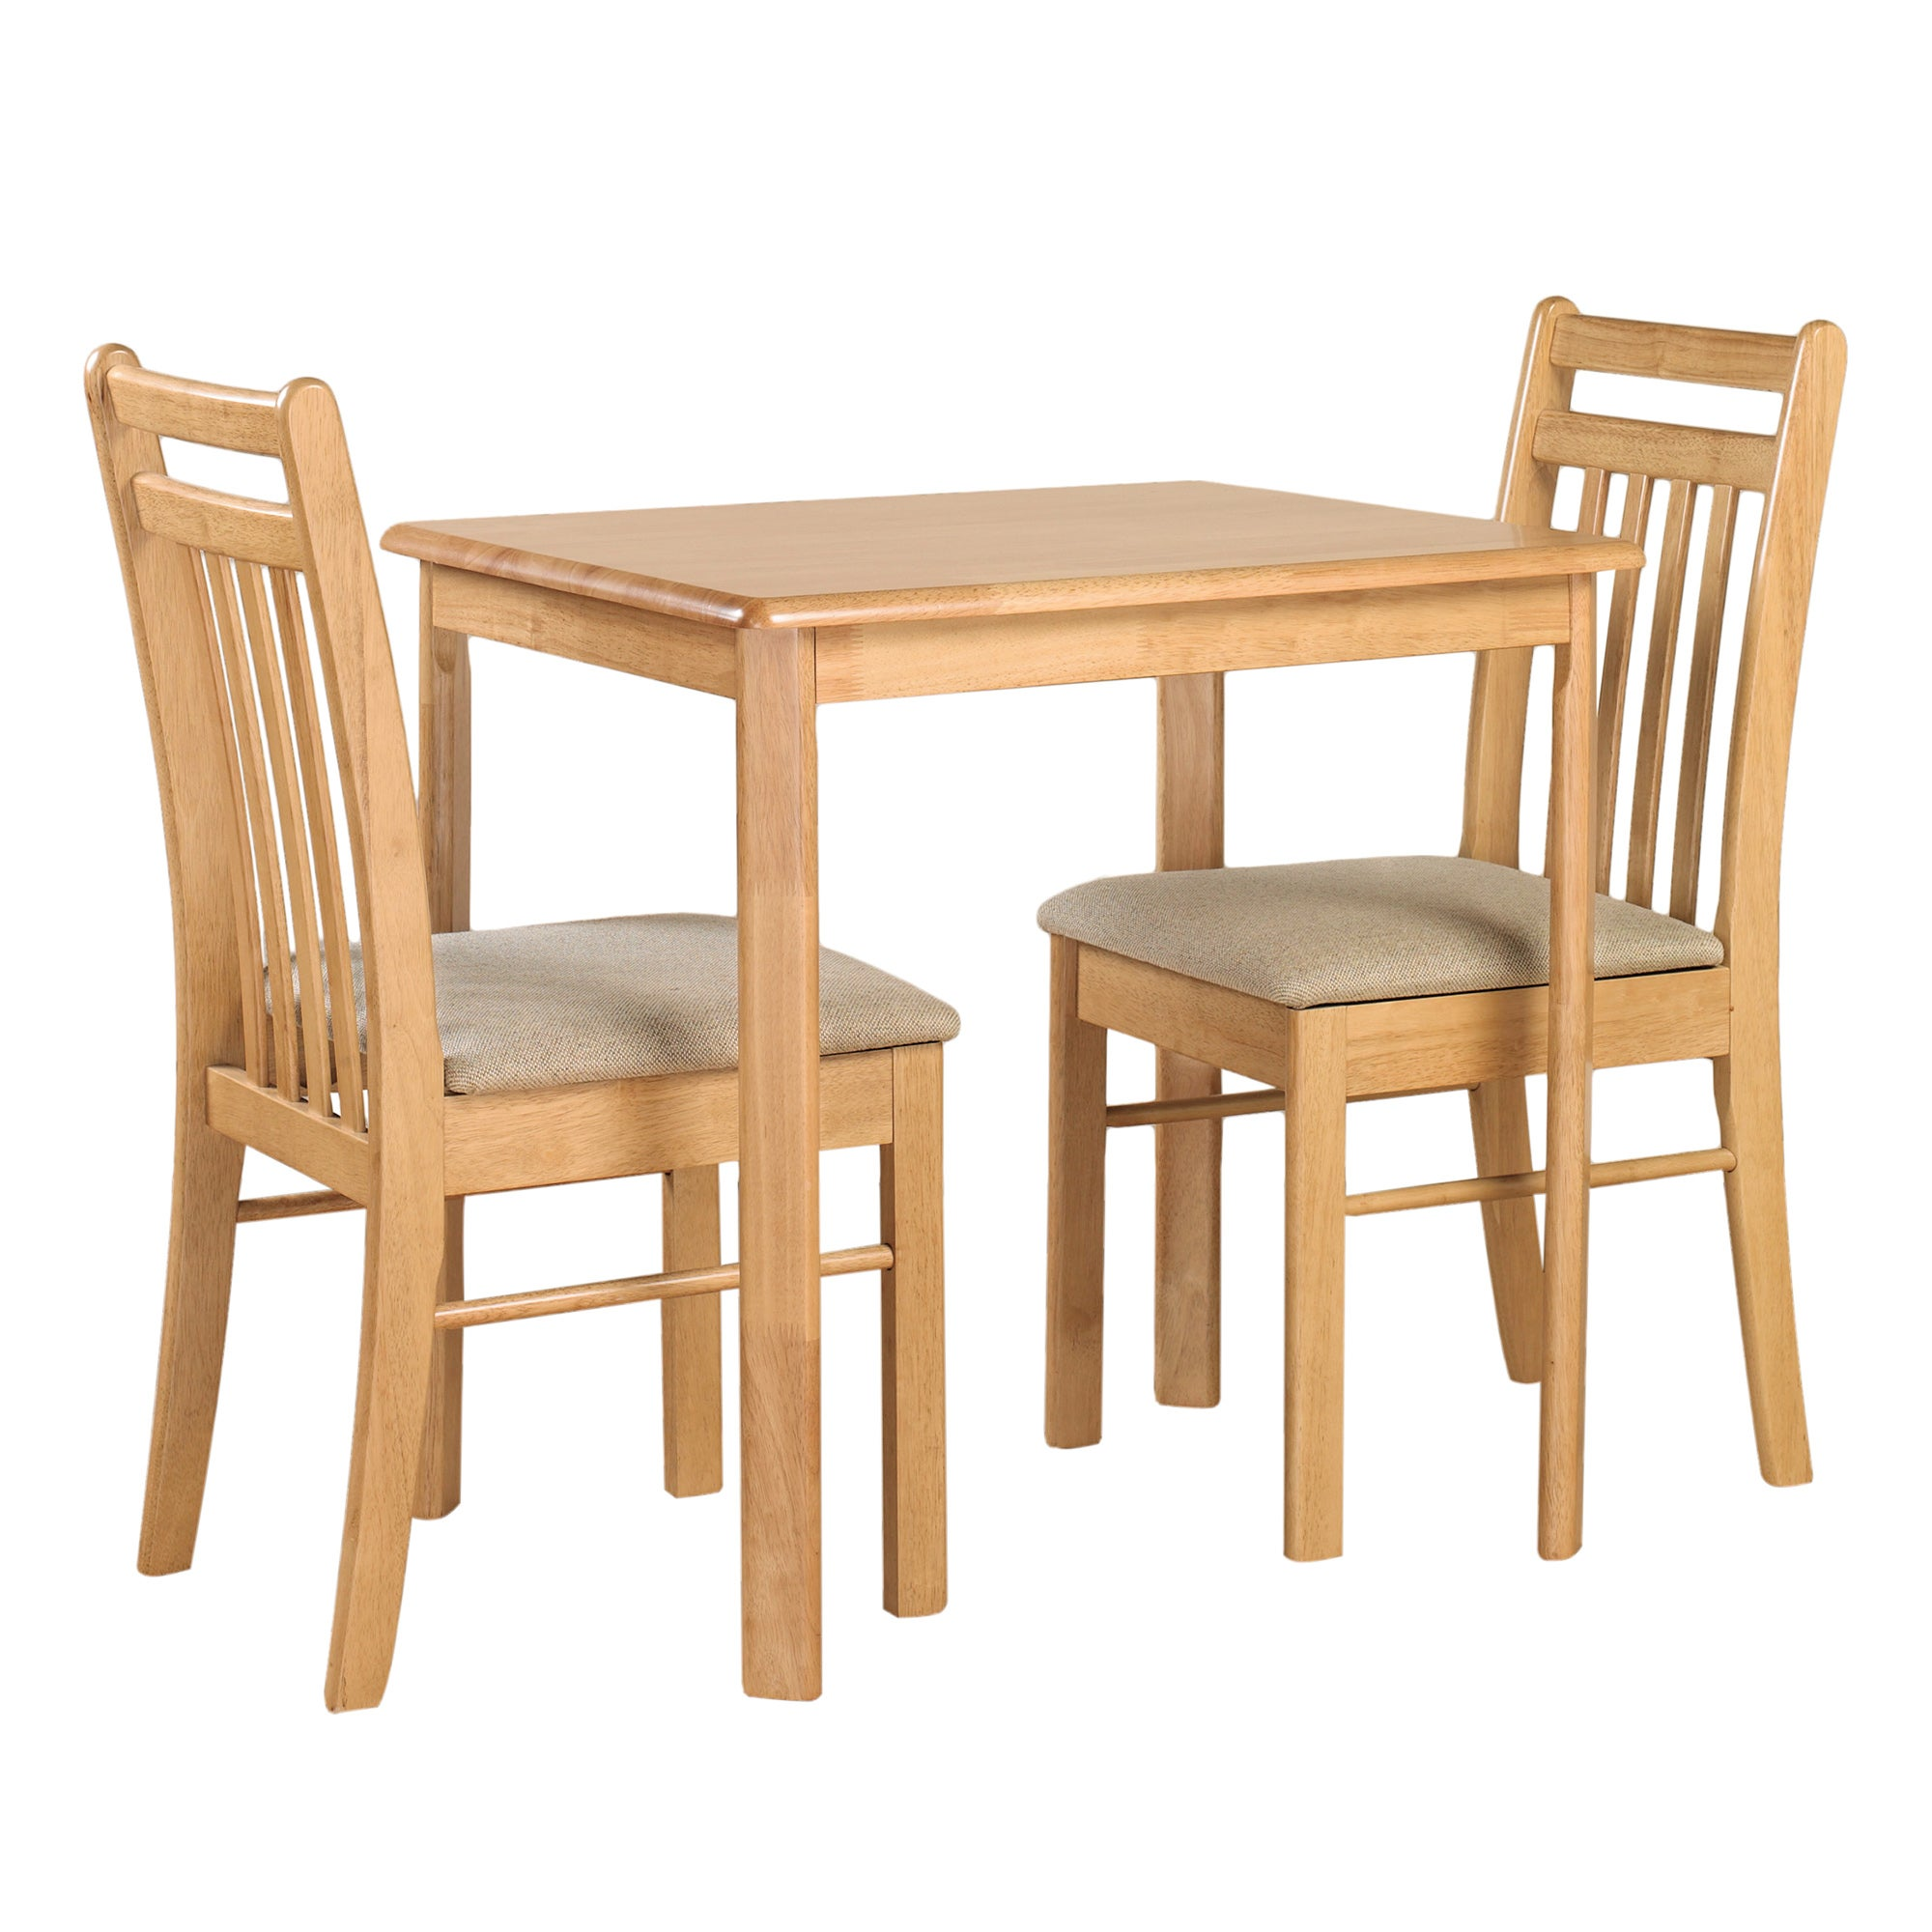 Cotswold Natural Dining Table and Chairs